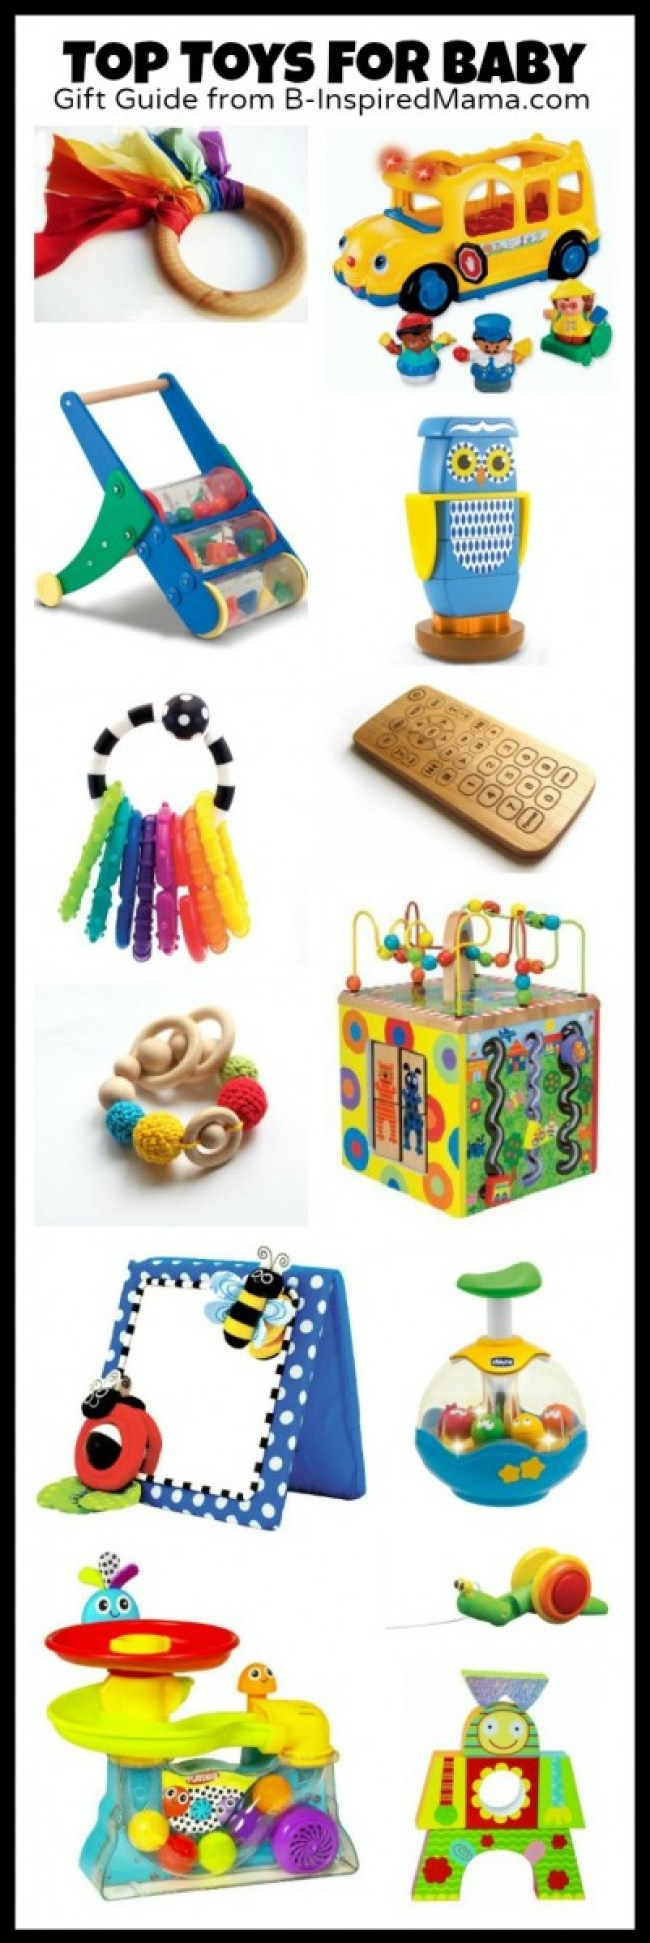 Top Toys for Baby Gift Guide at B-Inspired Mama